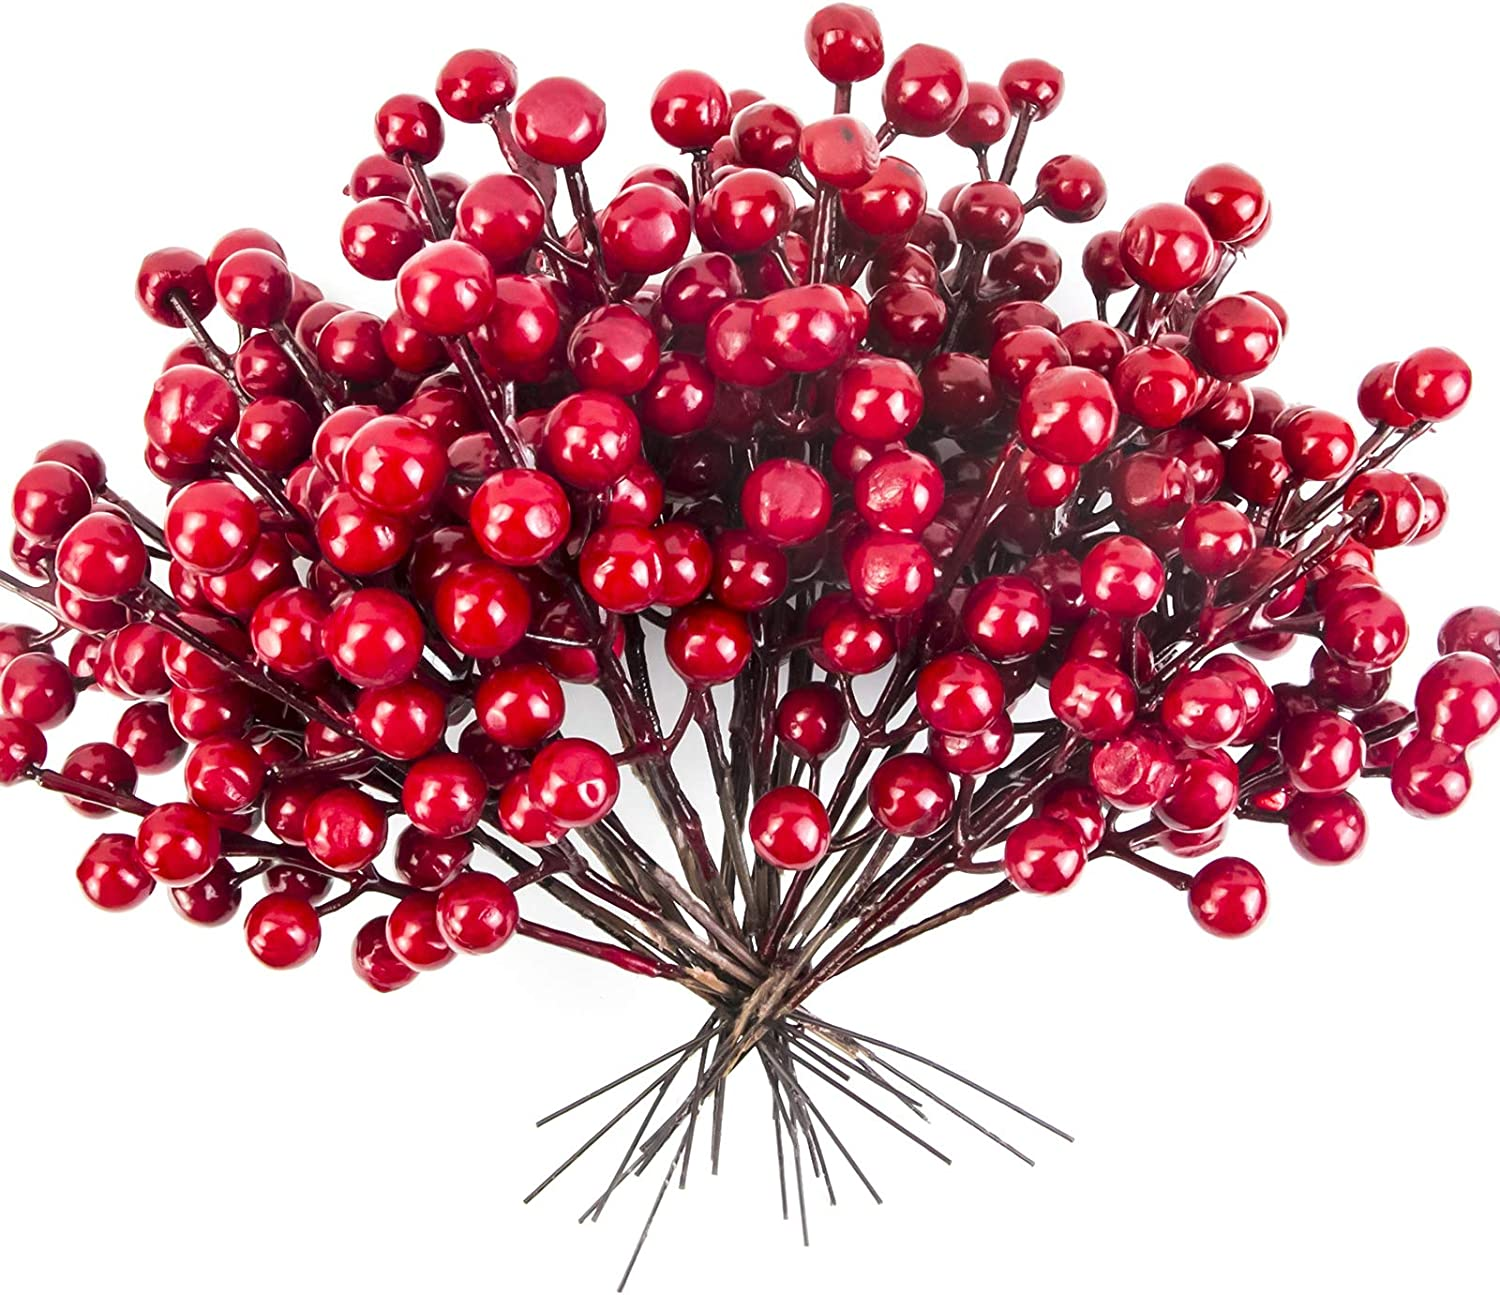 Tifarheart 30 Artificial Red Berry Stems Holly Christmas Berry Picks for DIY Wreath Tree Crafts Holiday and Home Decor